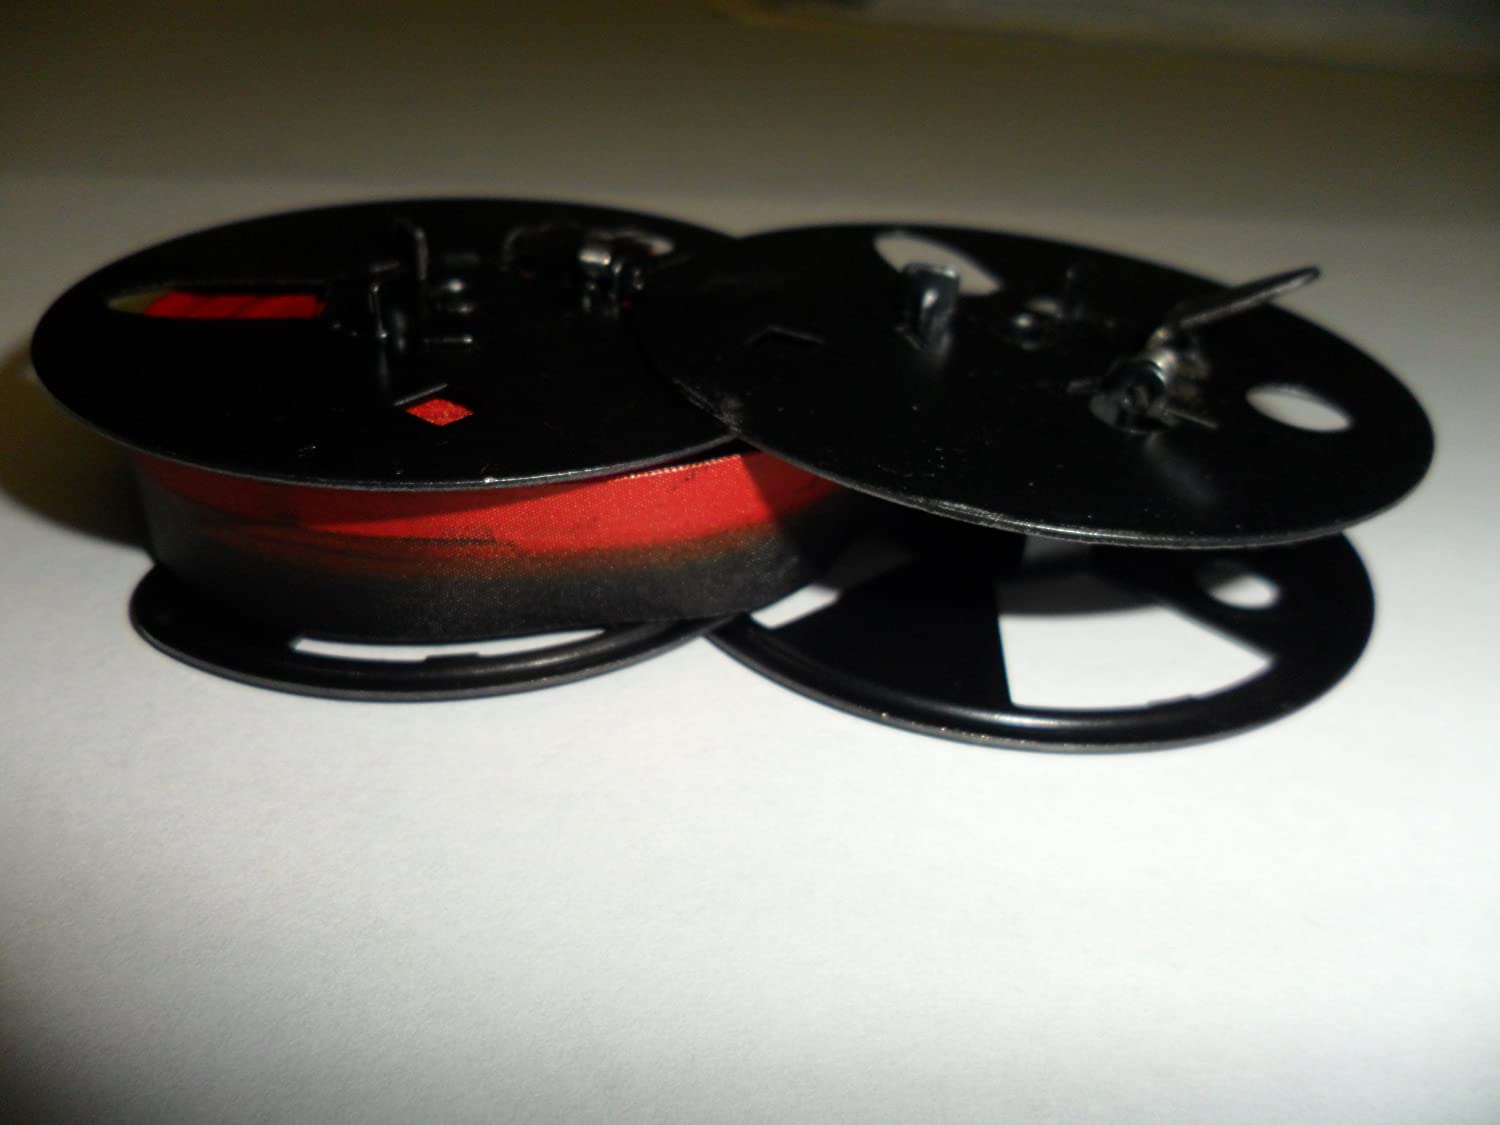 Royal 10, FP, HH, KHM and KMM Typewriter Ribbon, Black and Red, Compatible, 2 3/8 Twin Metal Spool 2 3/8 Twin Metal Spool LYSB00HV3827C-ELECTRNCS